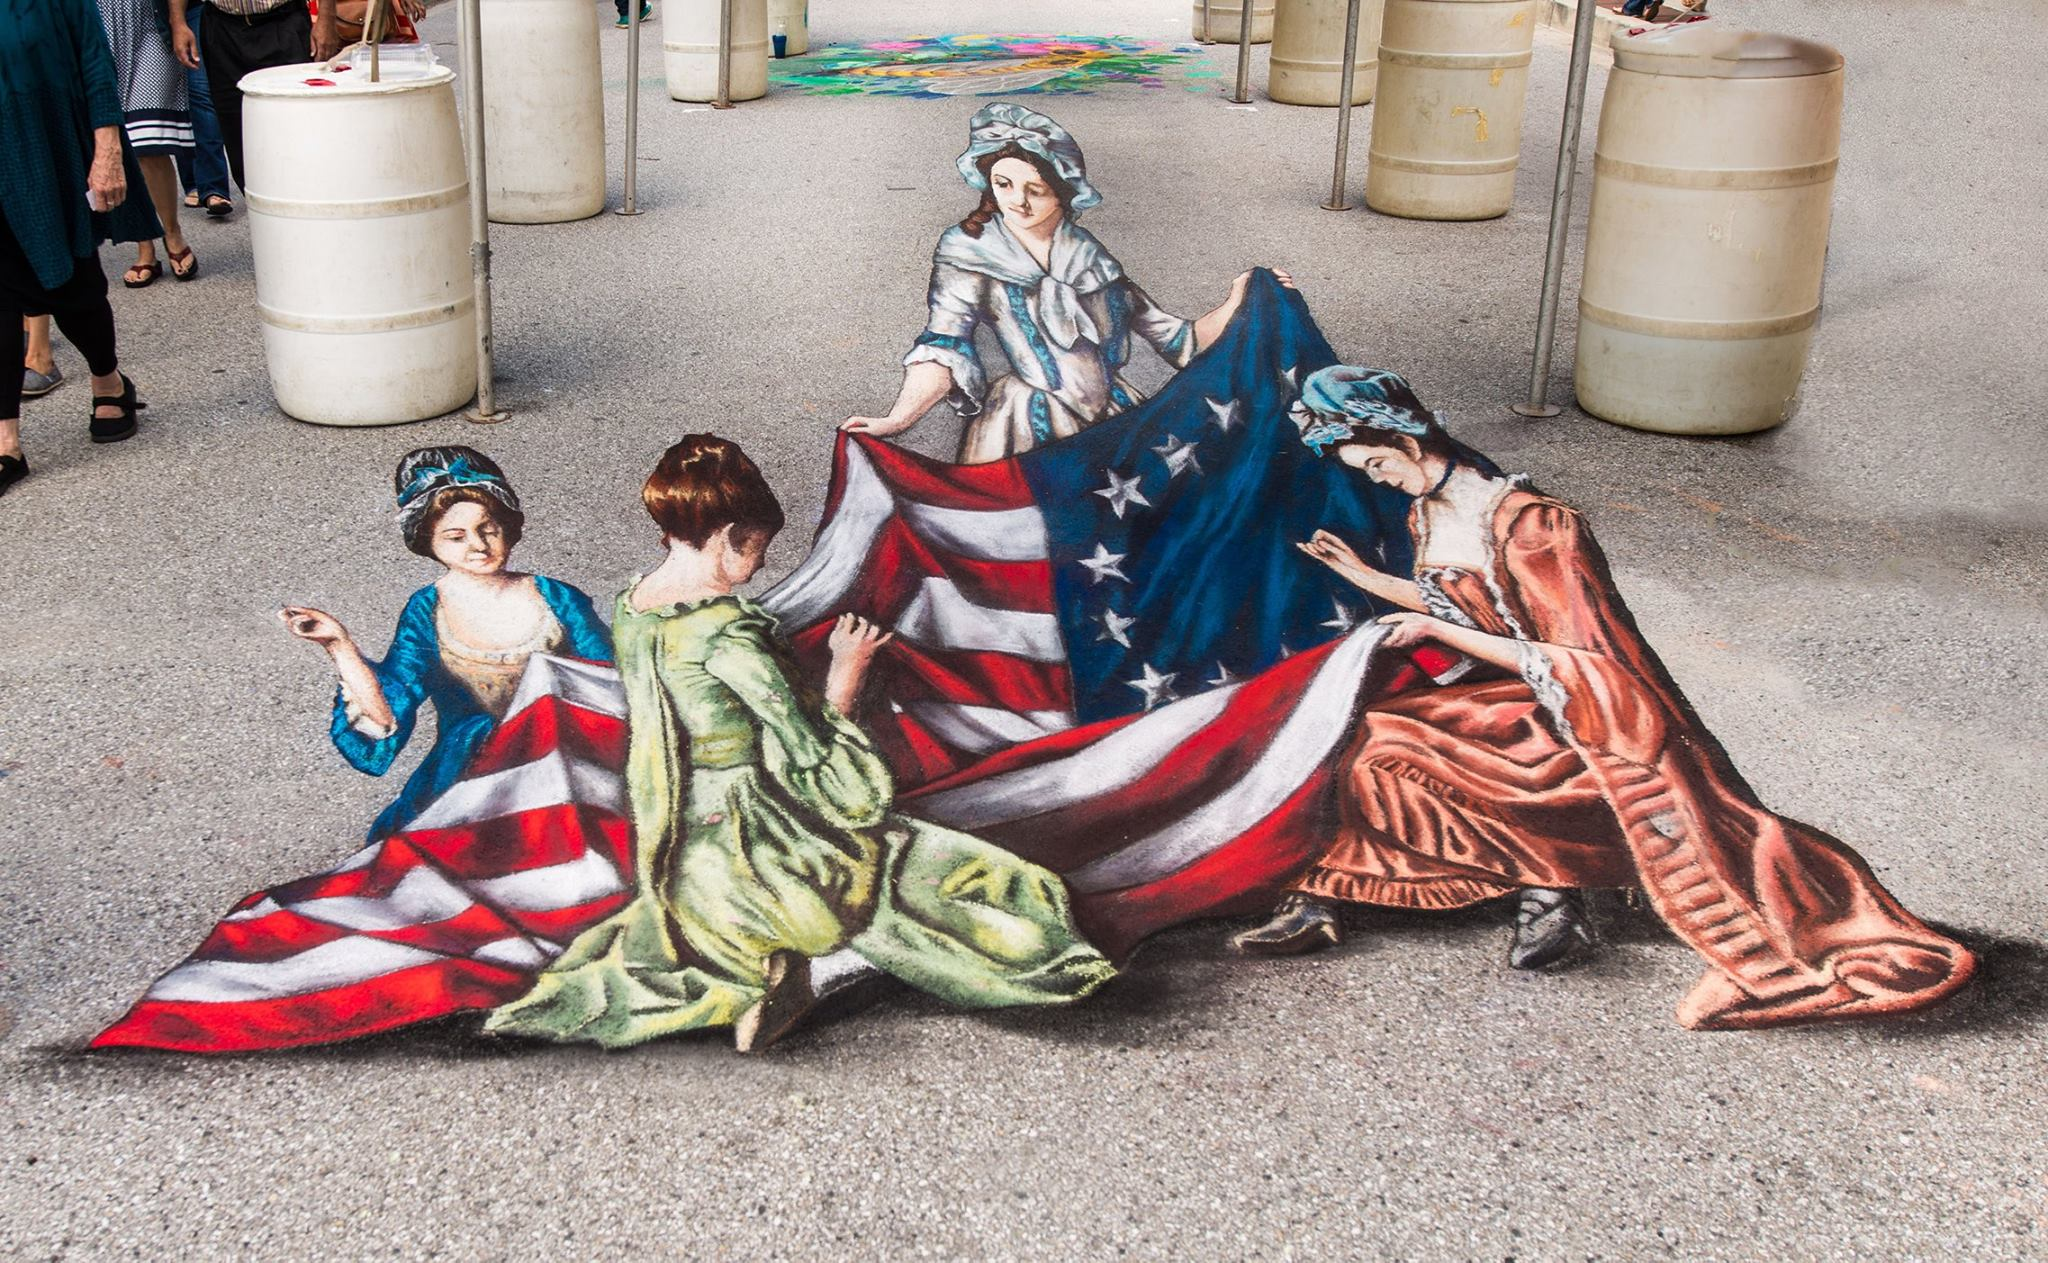 2017 Little Italy Madonnari Arts Festival, Baltimore, MD